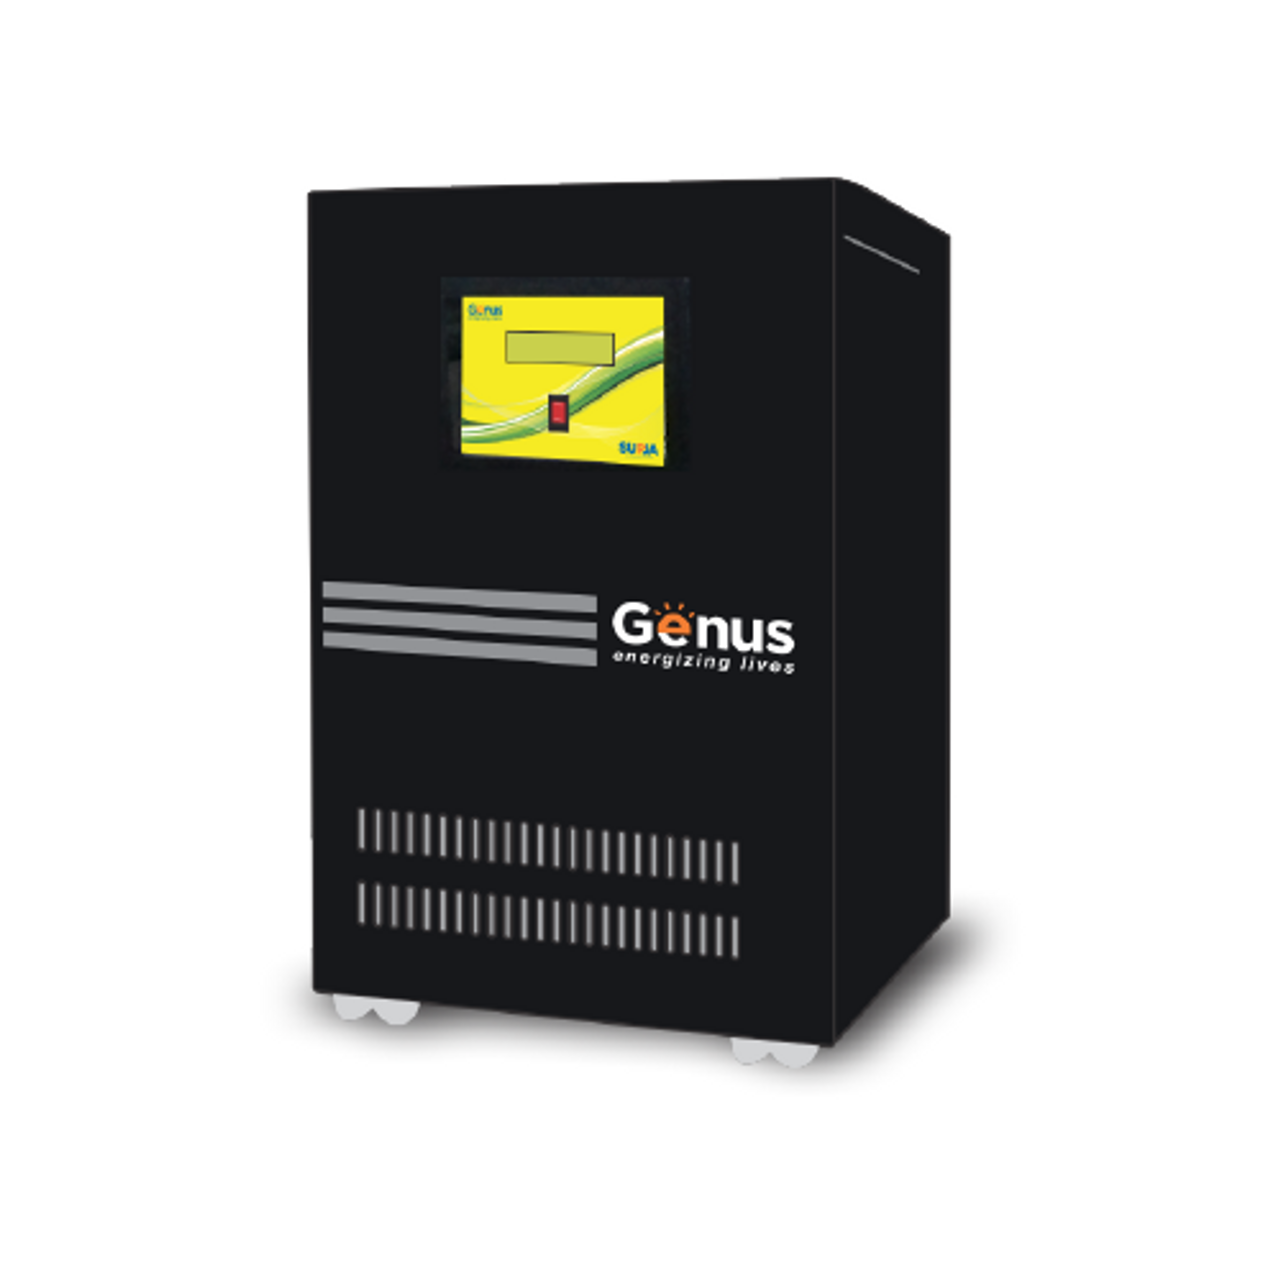 Buy Online Inverter 10kva 120v Genus From Gz Industrial Supplies Nigeria